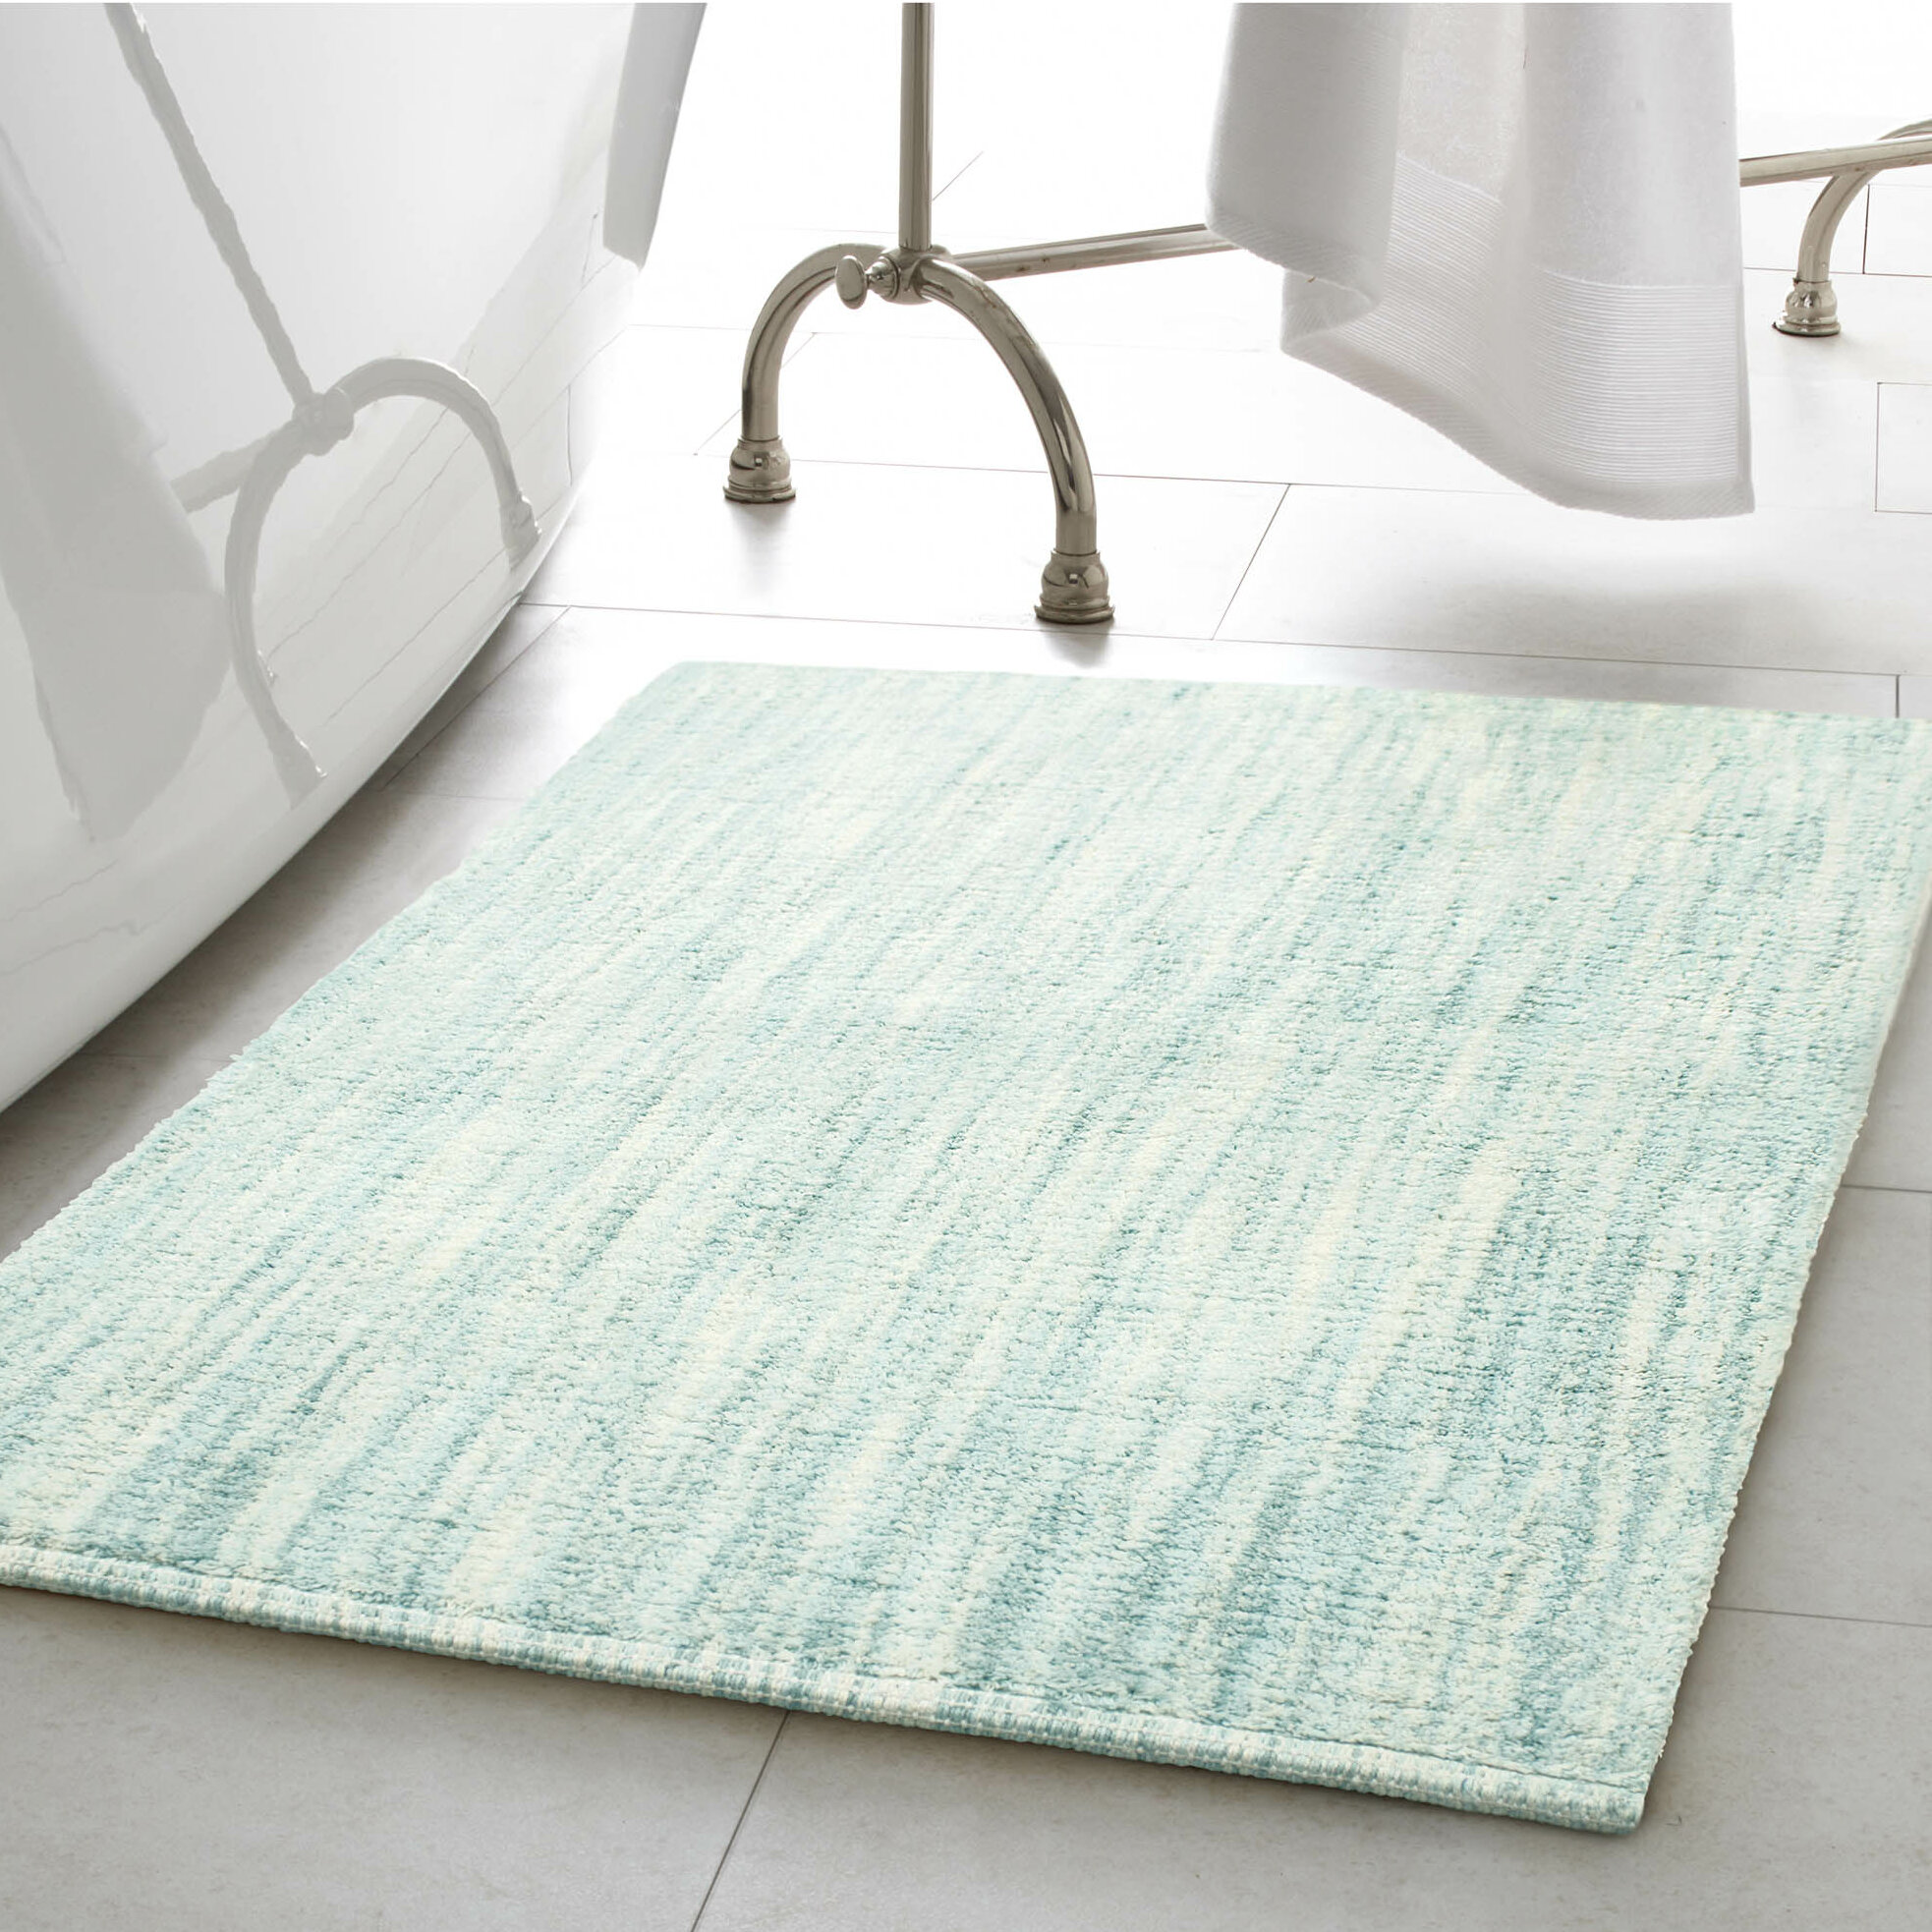 T Austin Design Boell 2 Piece Cotton Slub Bath Rug Set Reviews Wayfair